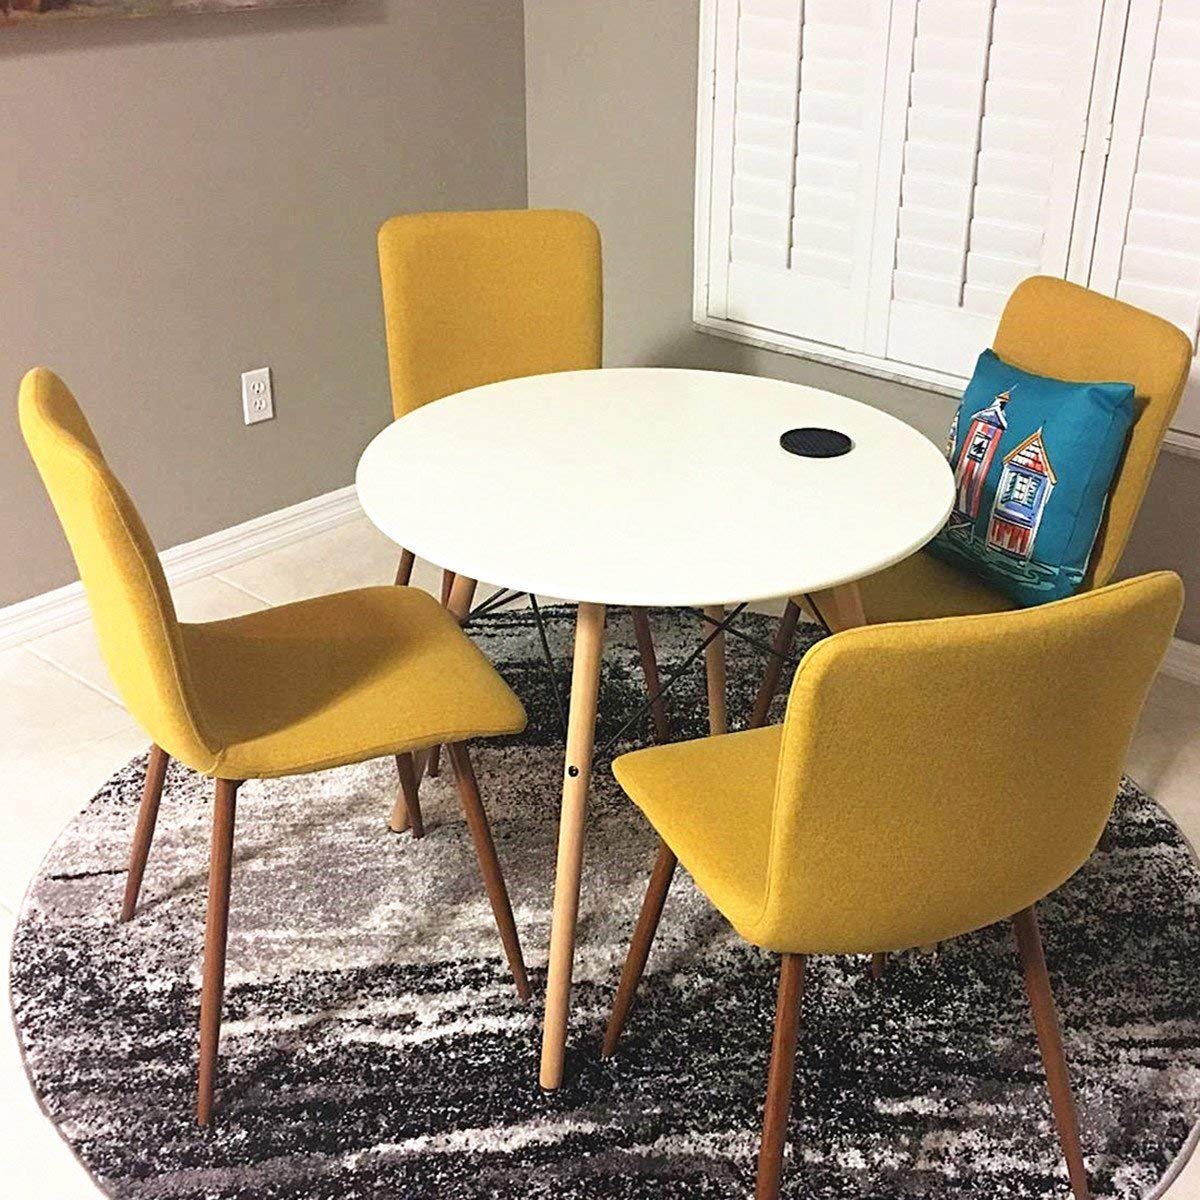 Coavas Set of 4 Dining Chairs Fabric Cushion Kitchen Side Chairs with Sturdy Metal Legs for Dining Room, Yellow by Coavas (Image #3)